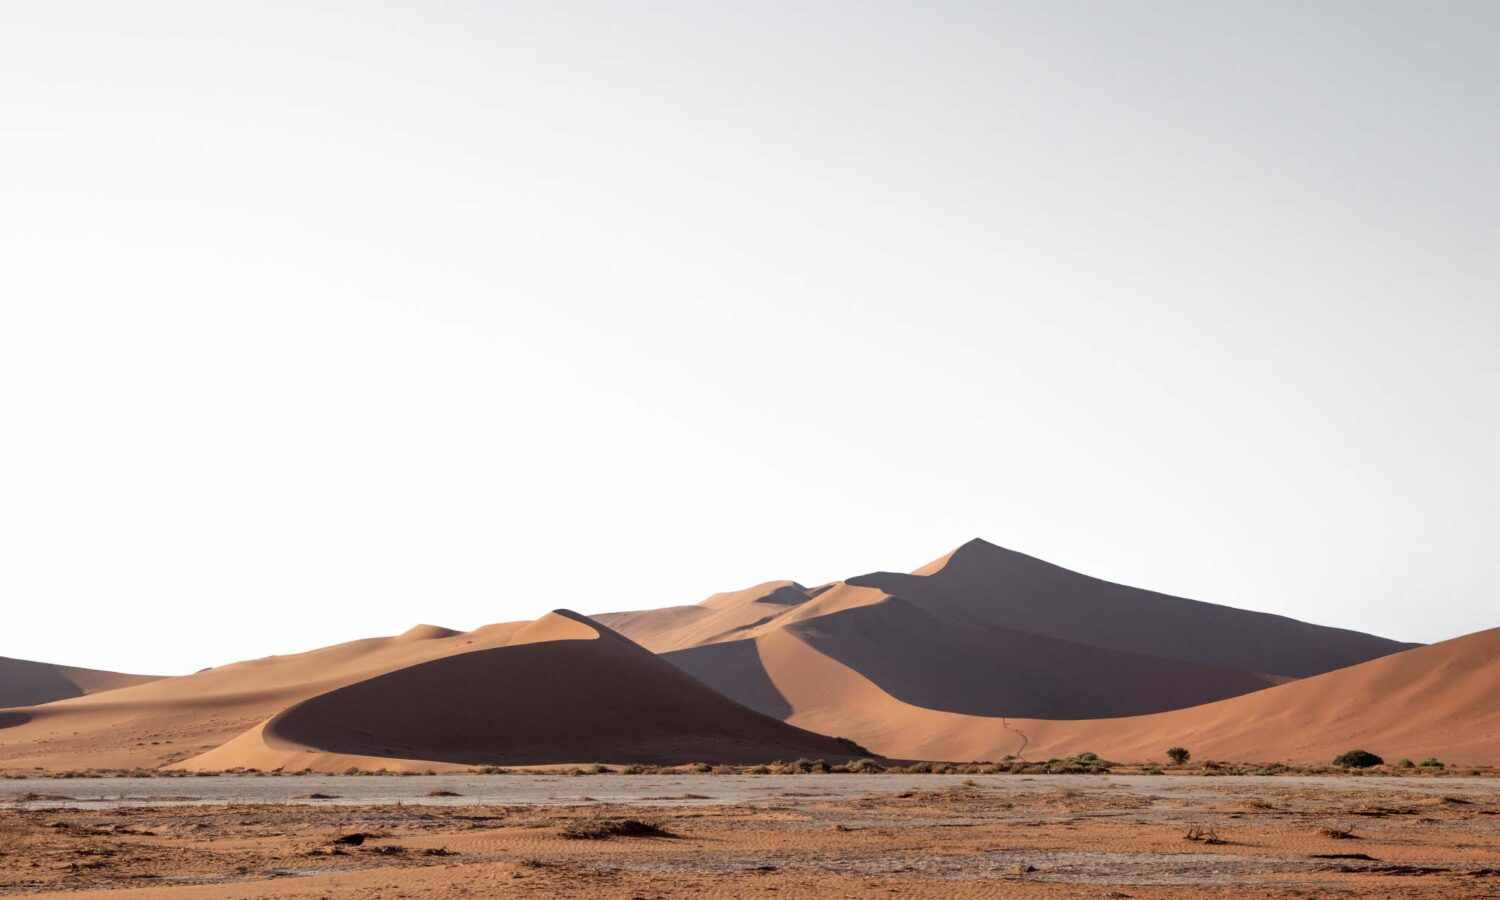 Admiring Big Daddy dune on our 2 days in Sossuvlei